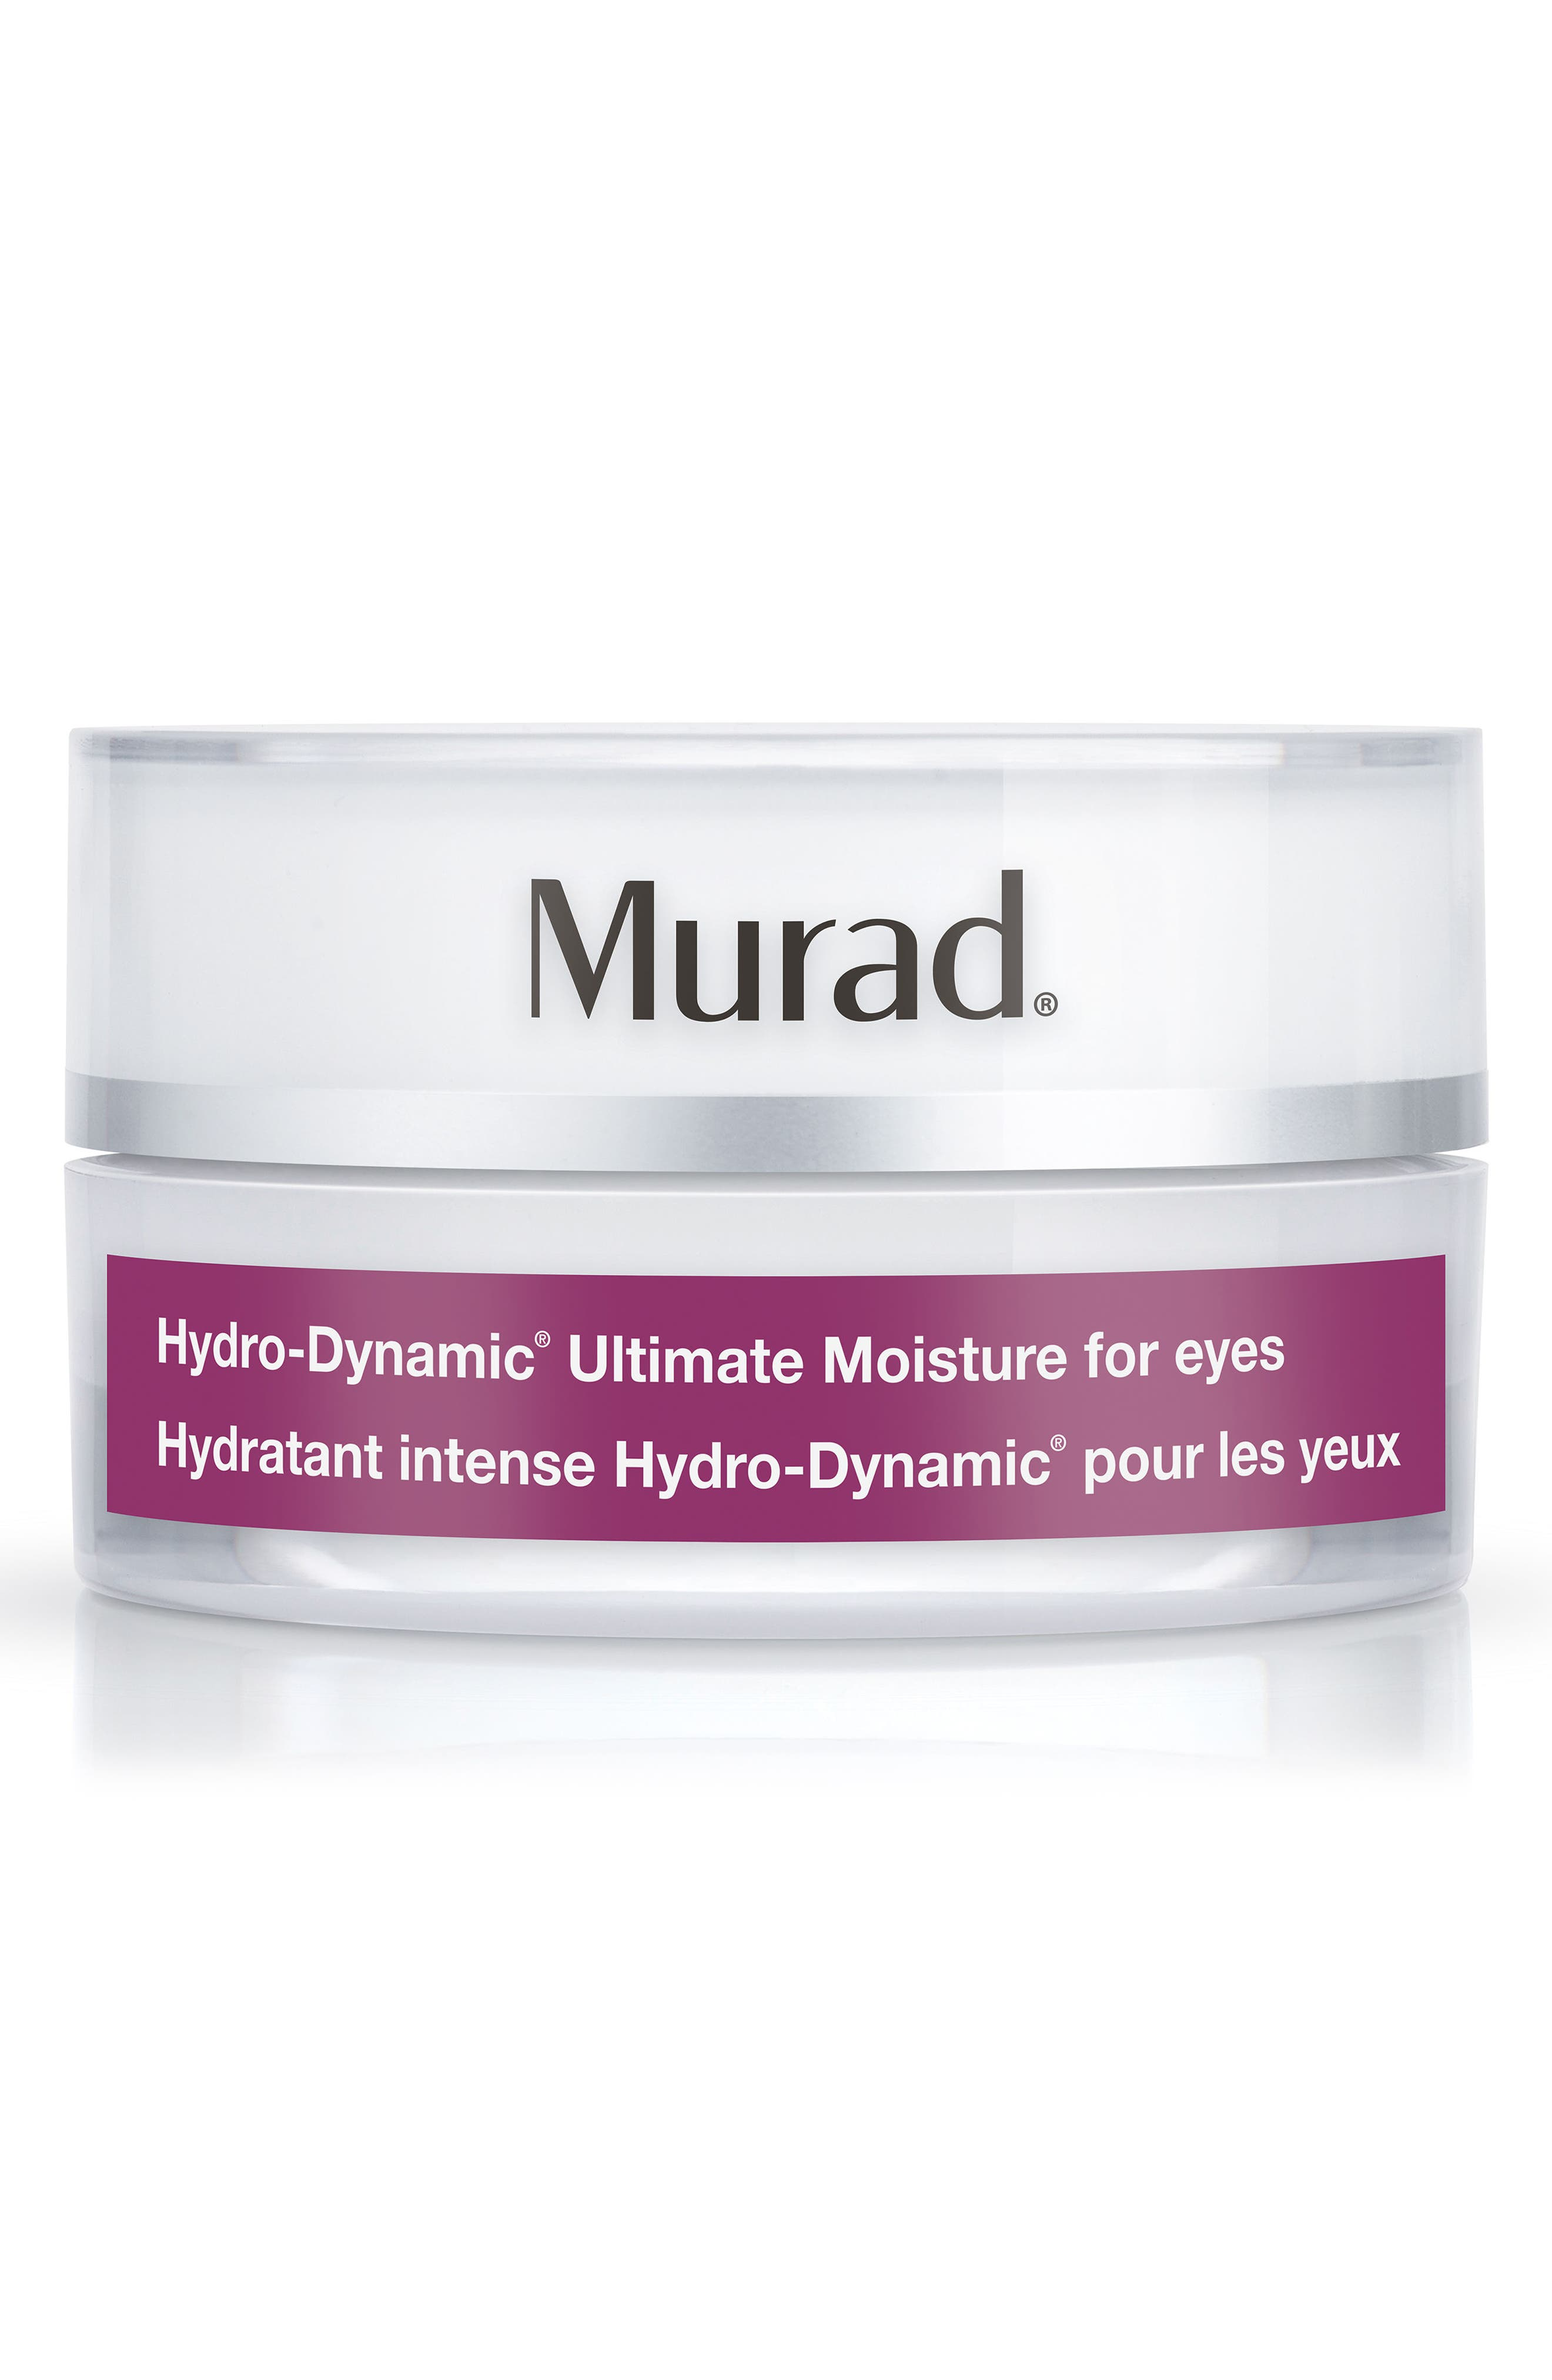 Murad® Hydro-Dynamic® Ultimate Moisture for Eyes